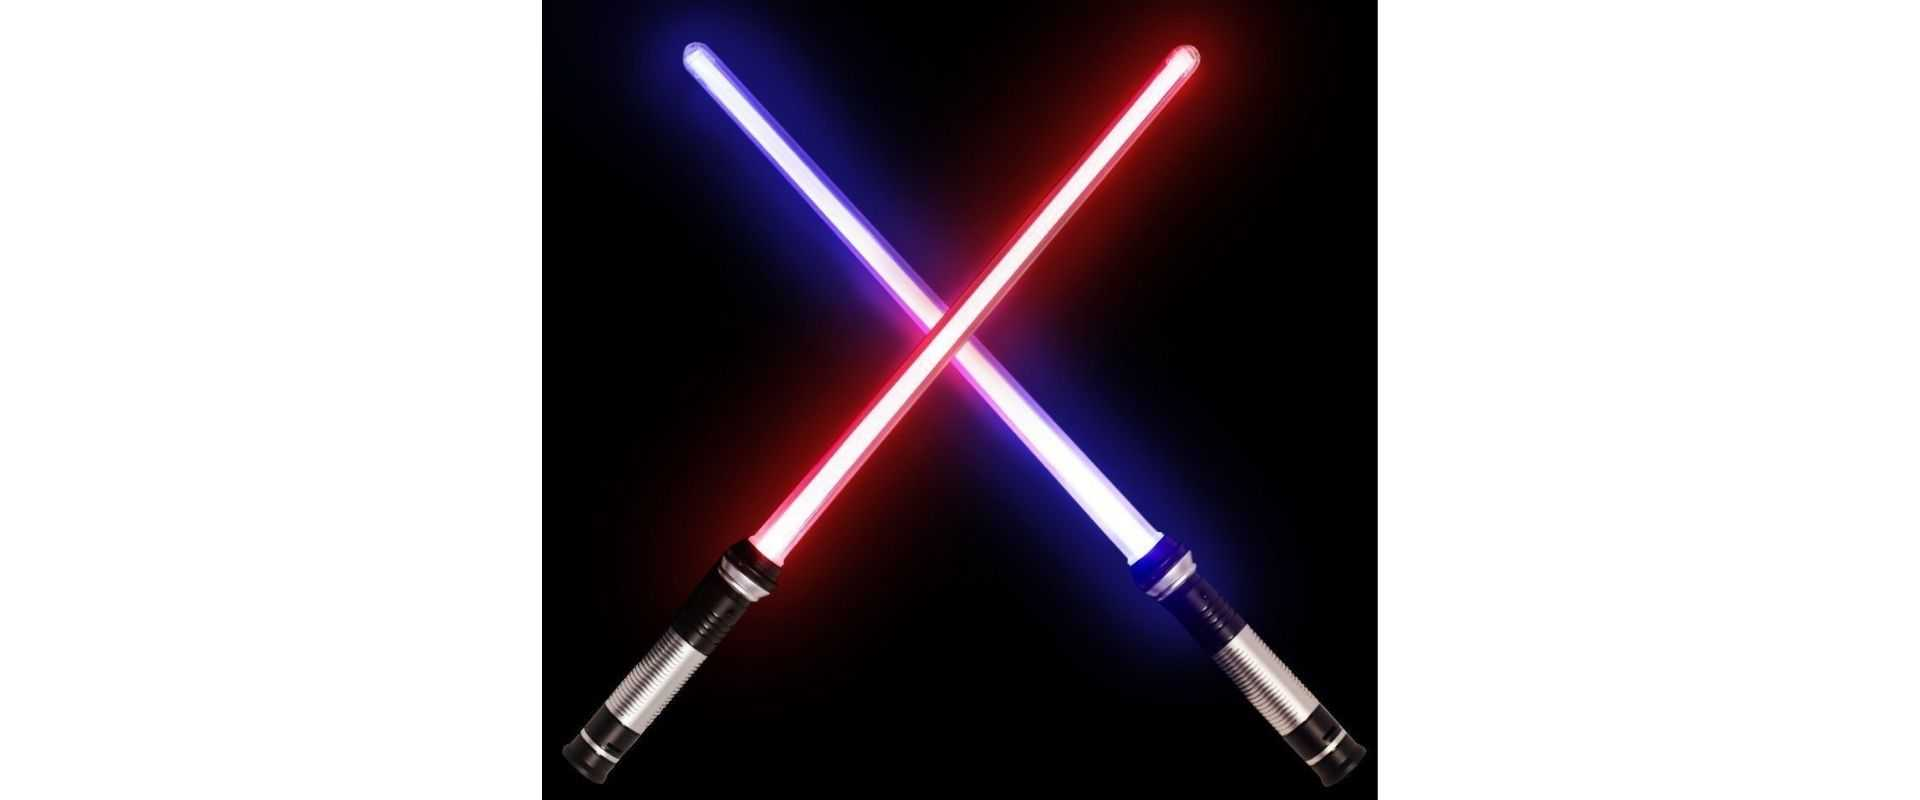 The glowing lightsaber effect in the Star Wars fil